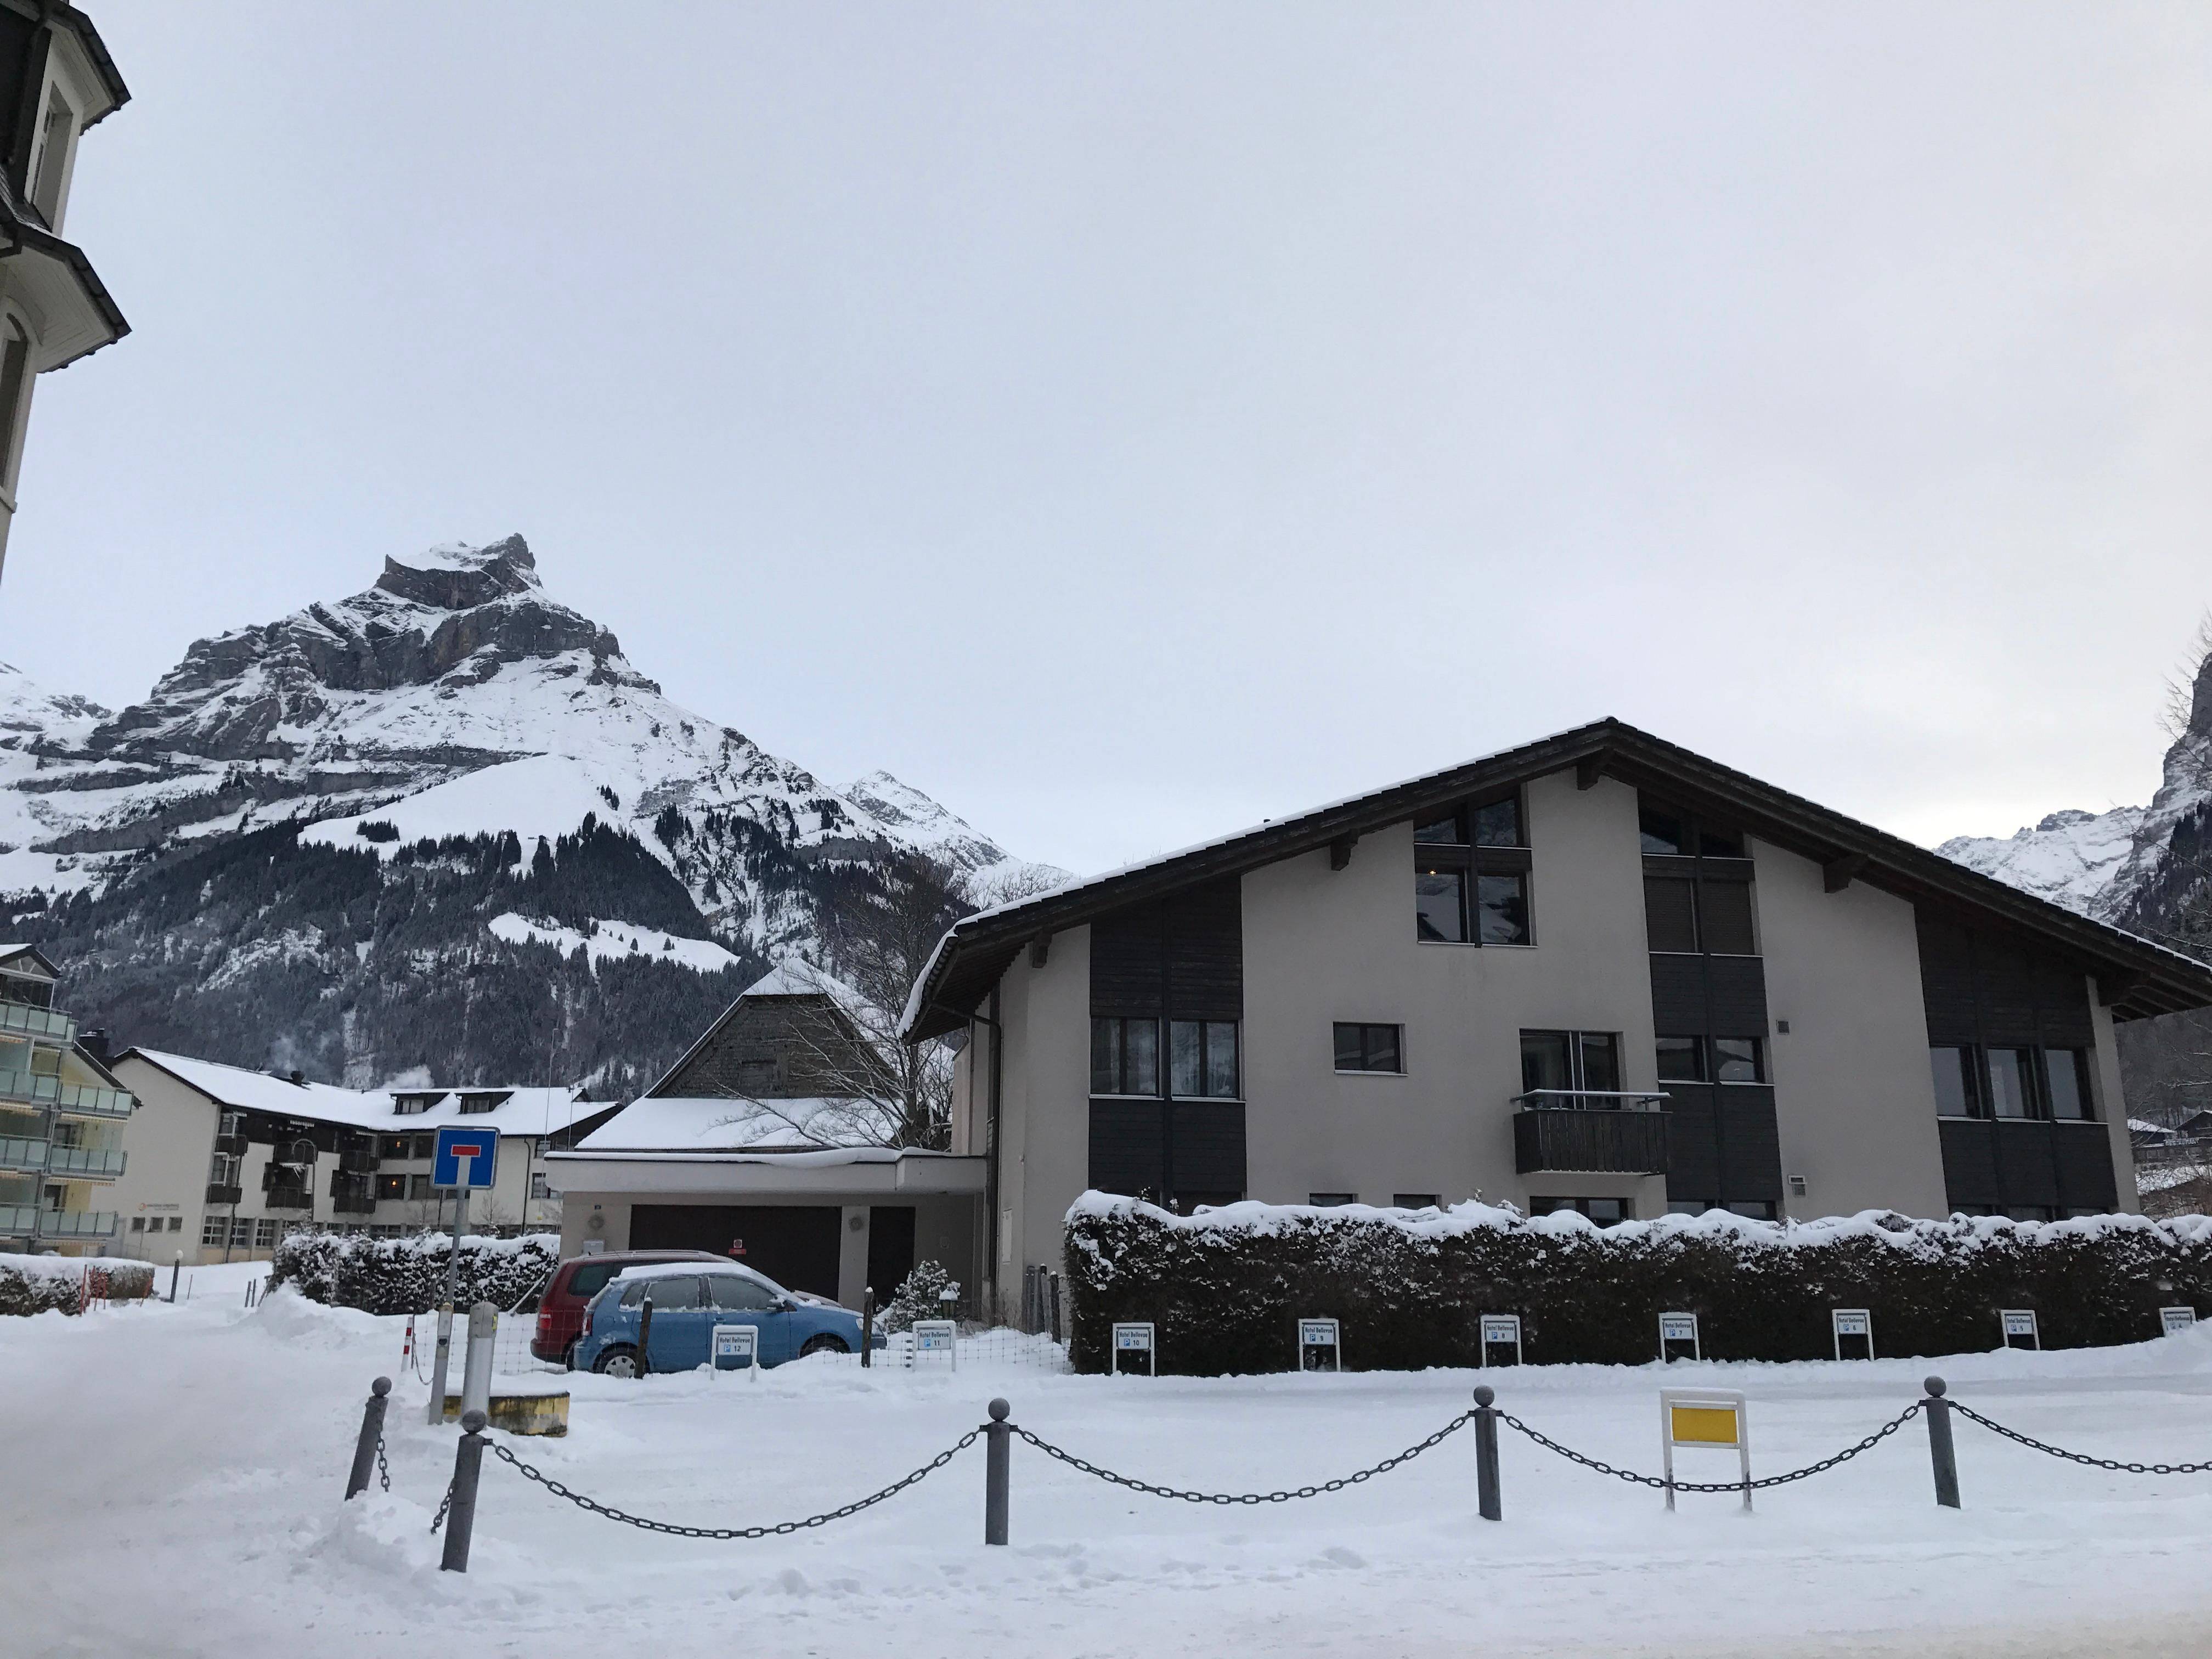 View from front of the hotel